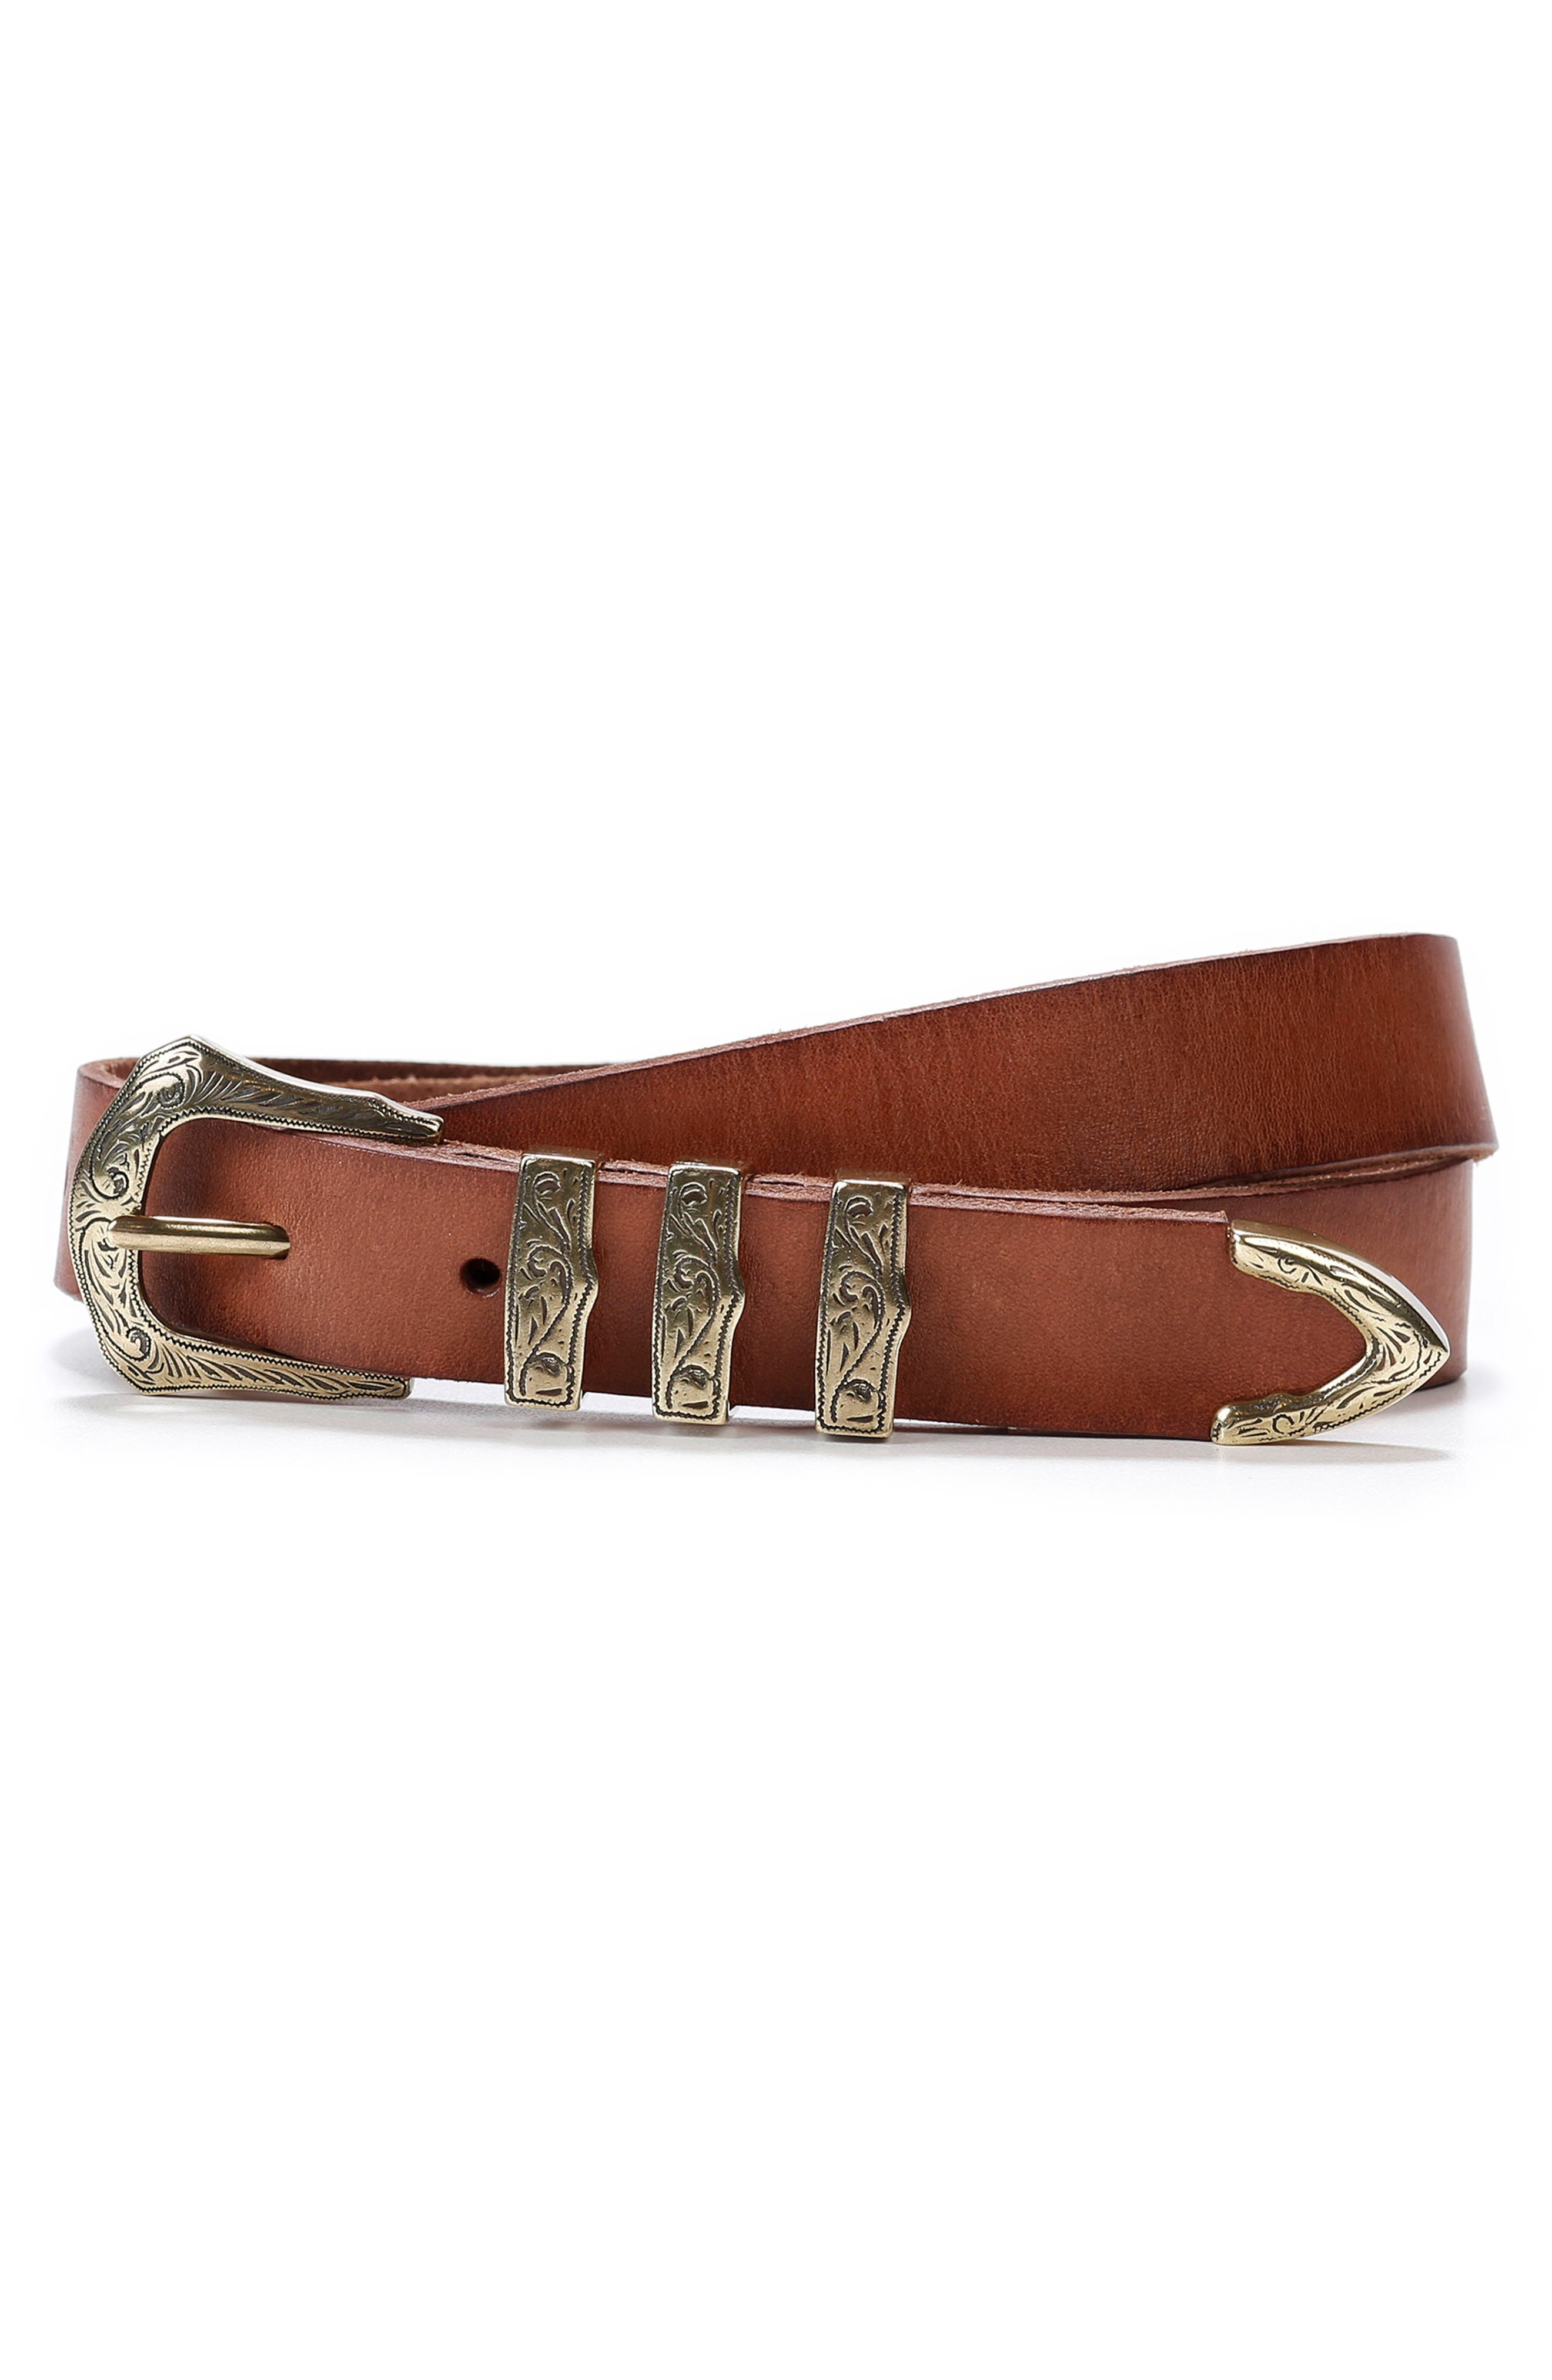 Alternate Image 1 Selected - PAIGE Abigail Leather Belt